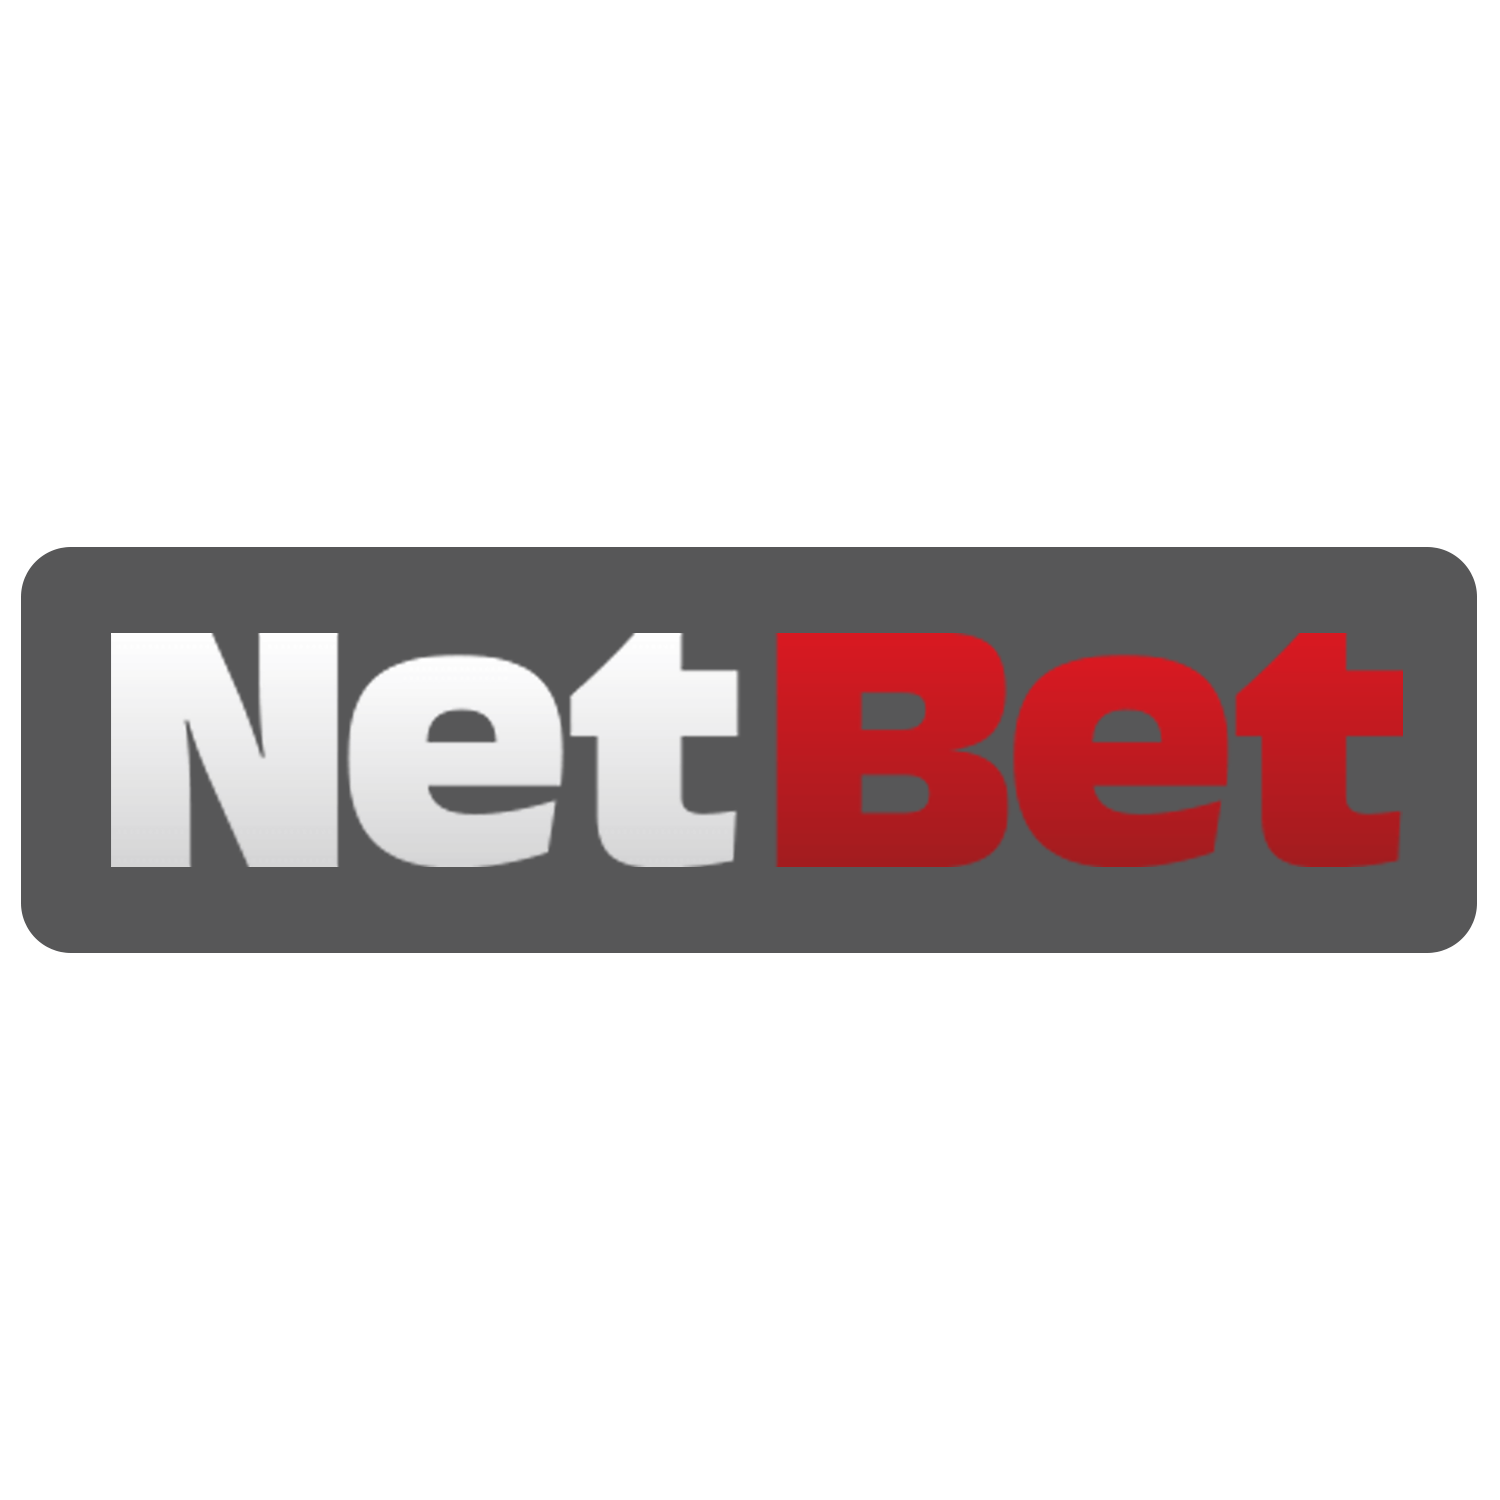 NetBet has established itself as a reliable website for buying online lottery tickets.